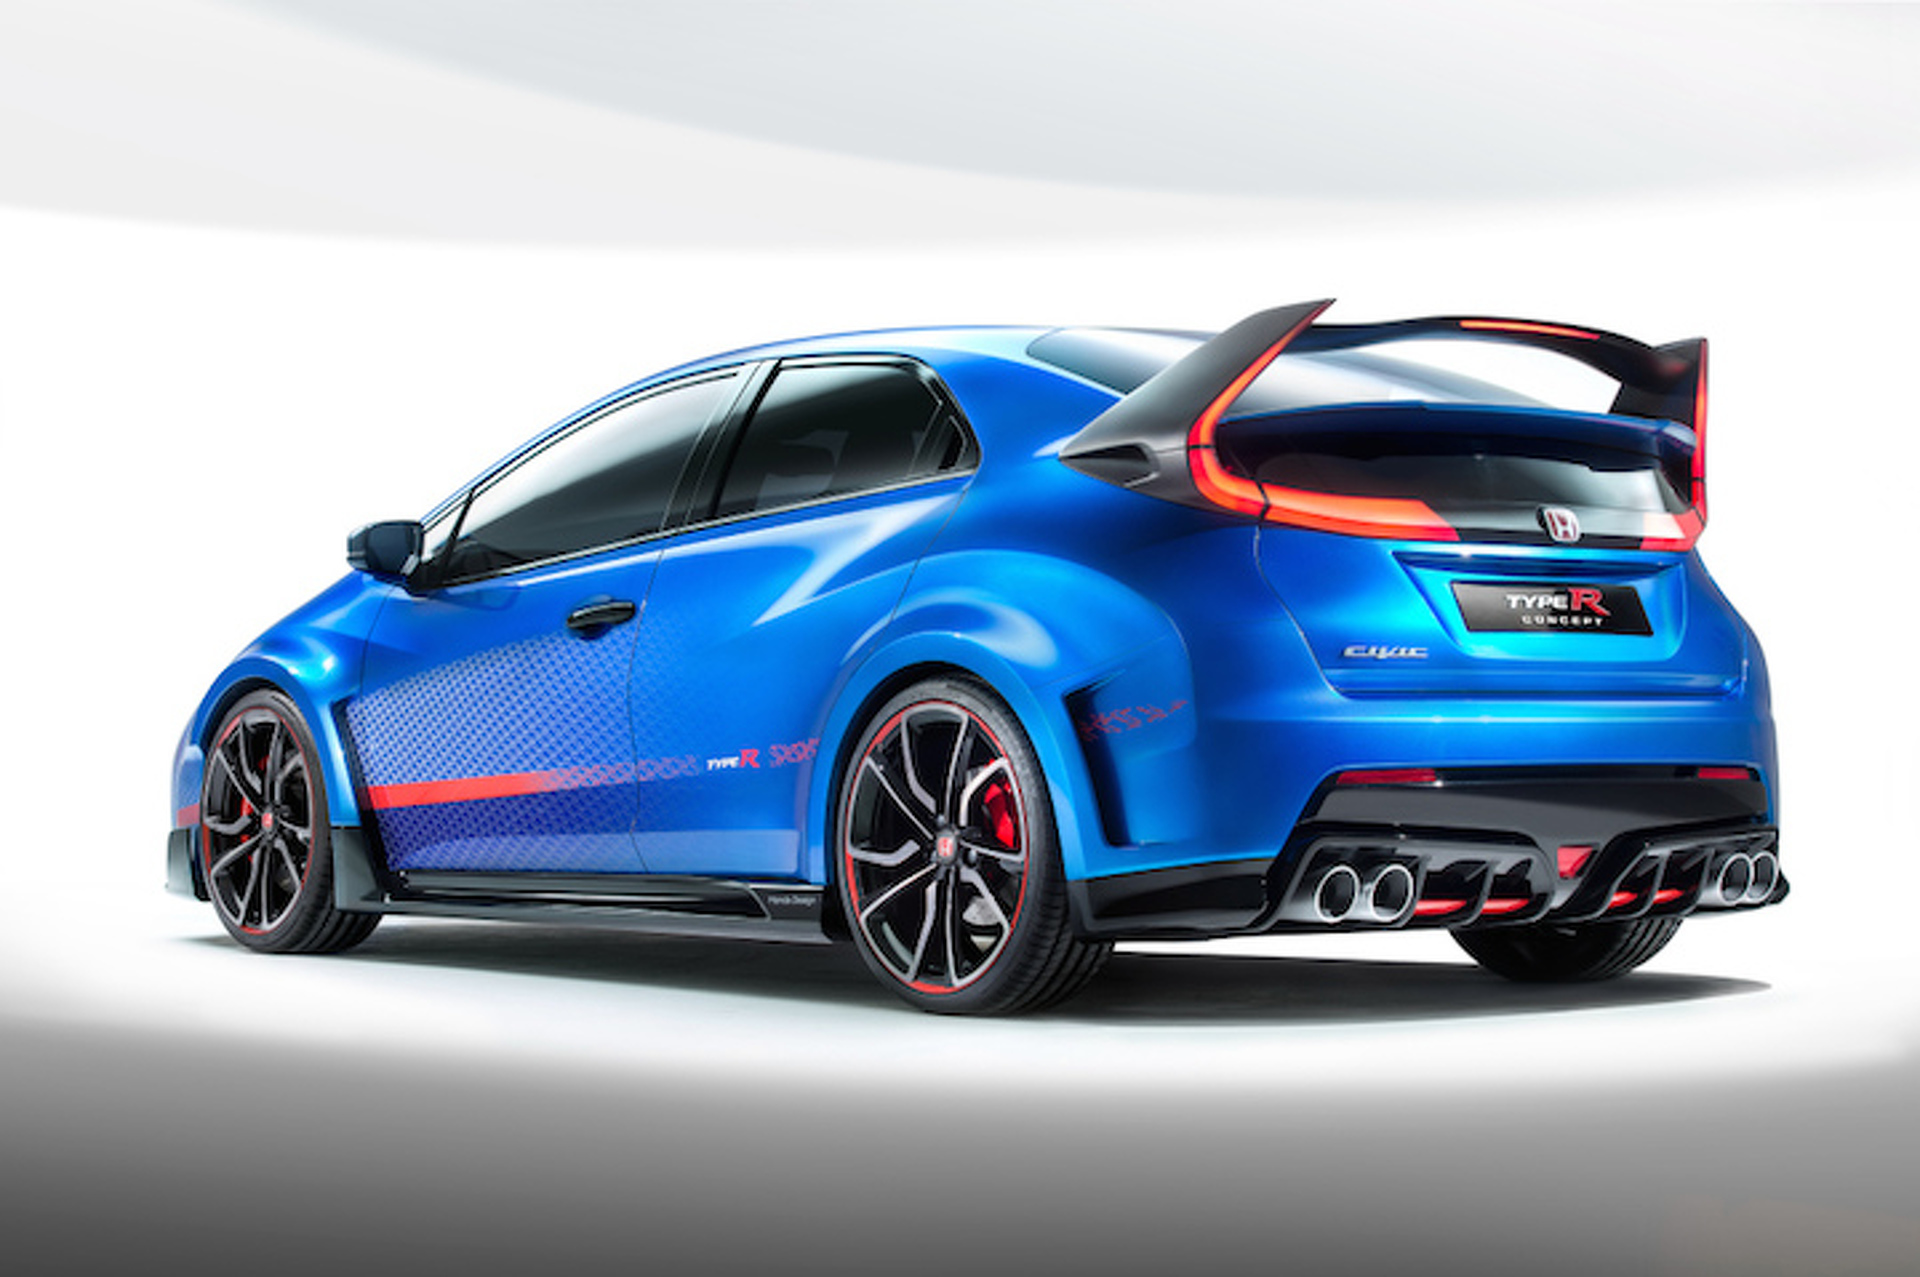 Why Does Honda Deny Us the Thrilling Civic Type R?